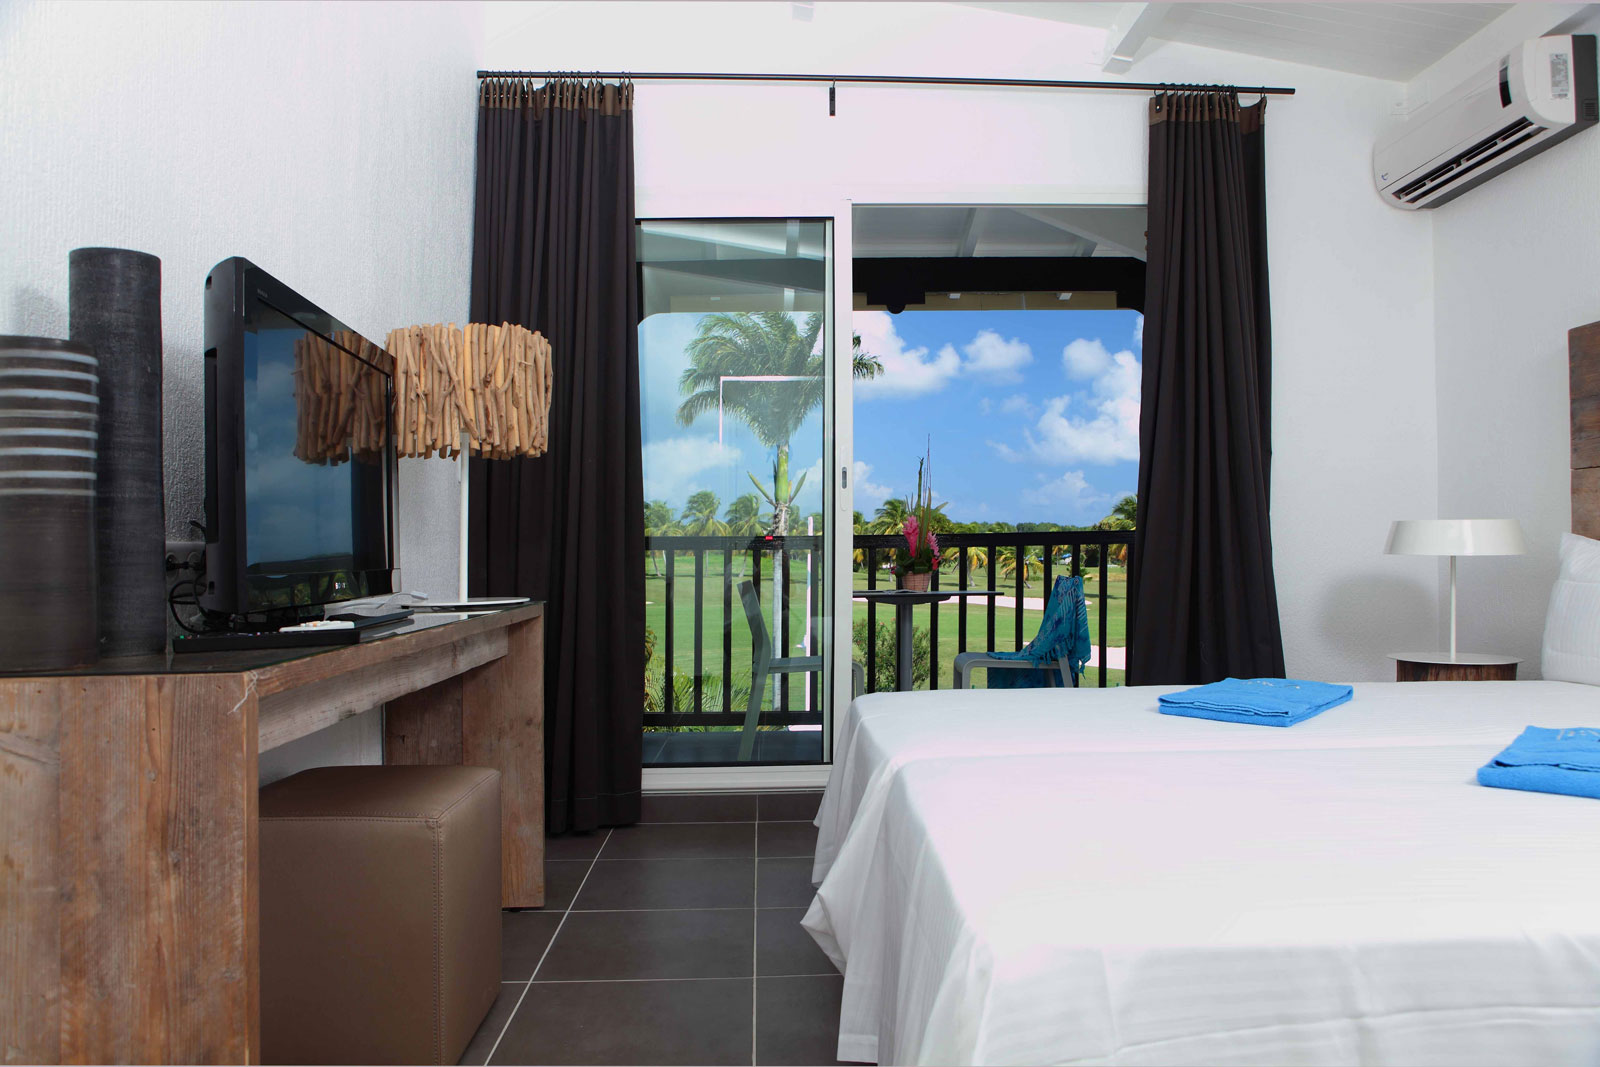 http://www.deshotelsetdesiles.com/hotel-vol-guadeloupe/photos/Chambre-vue-golf14.jpg